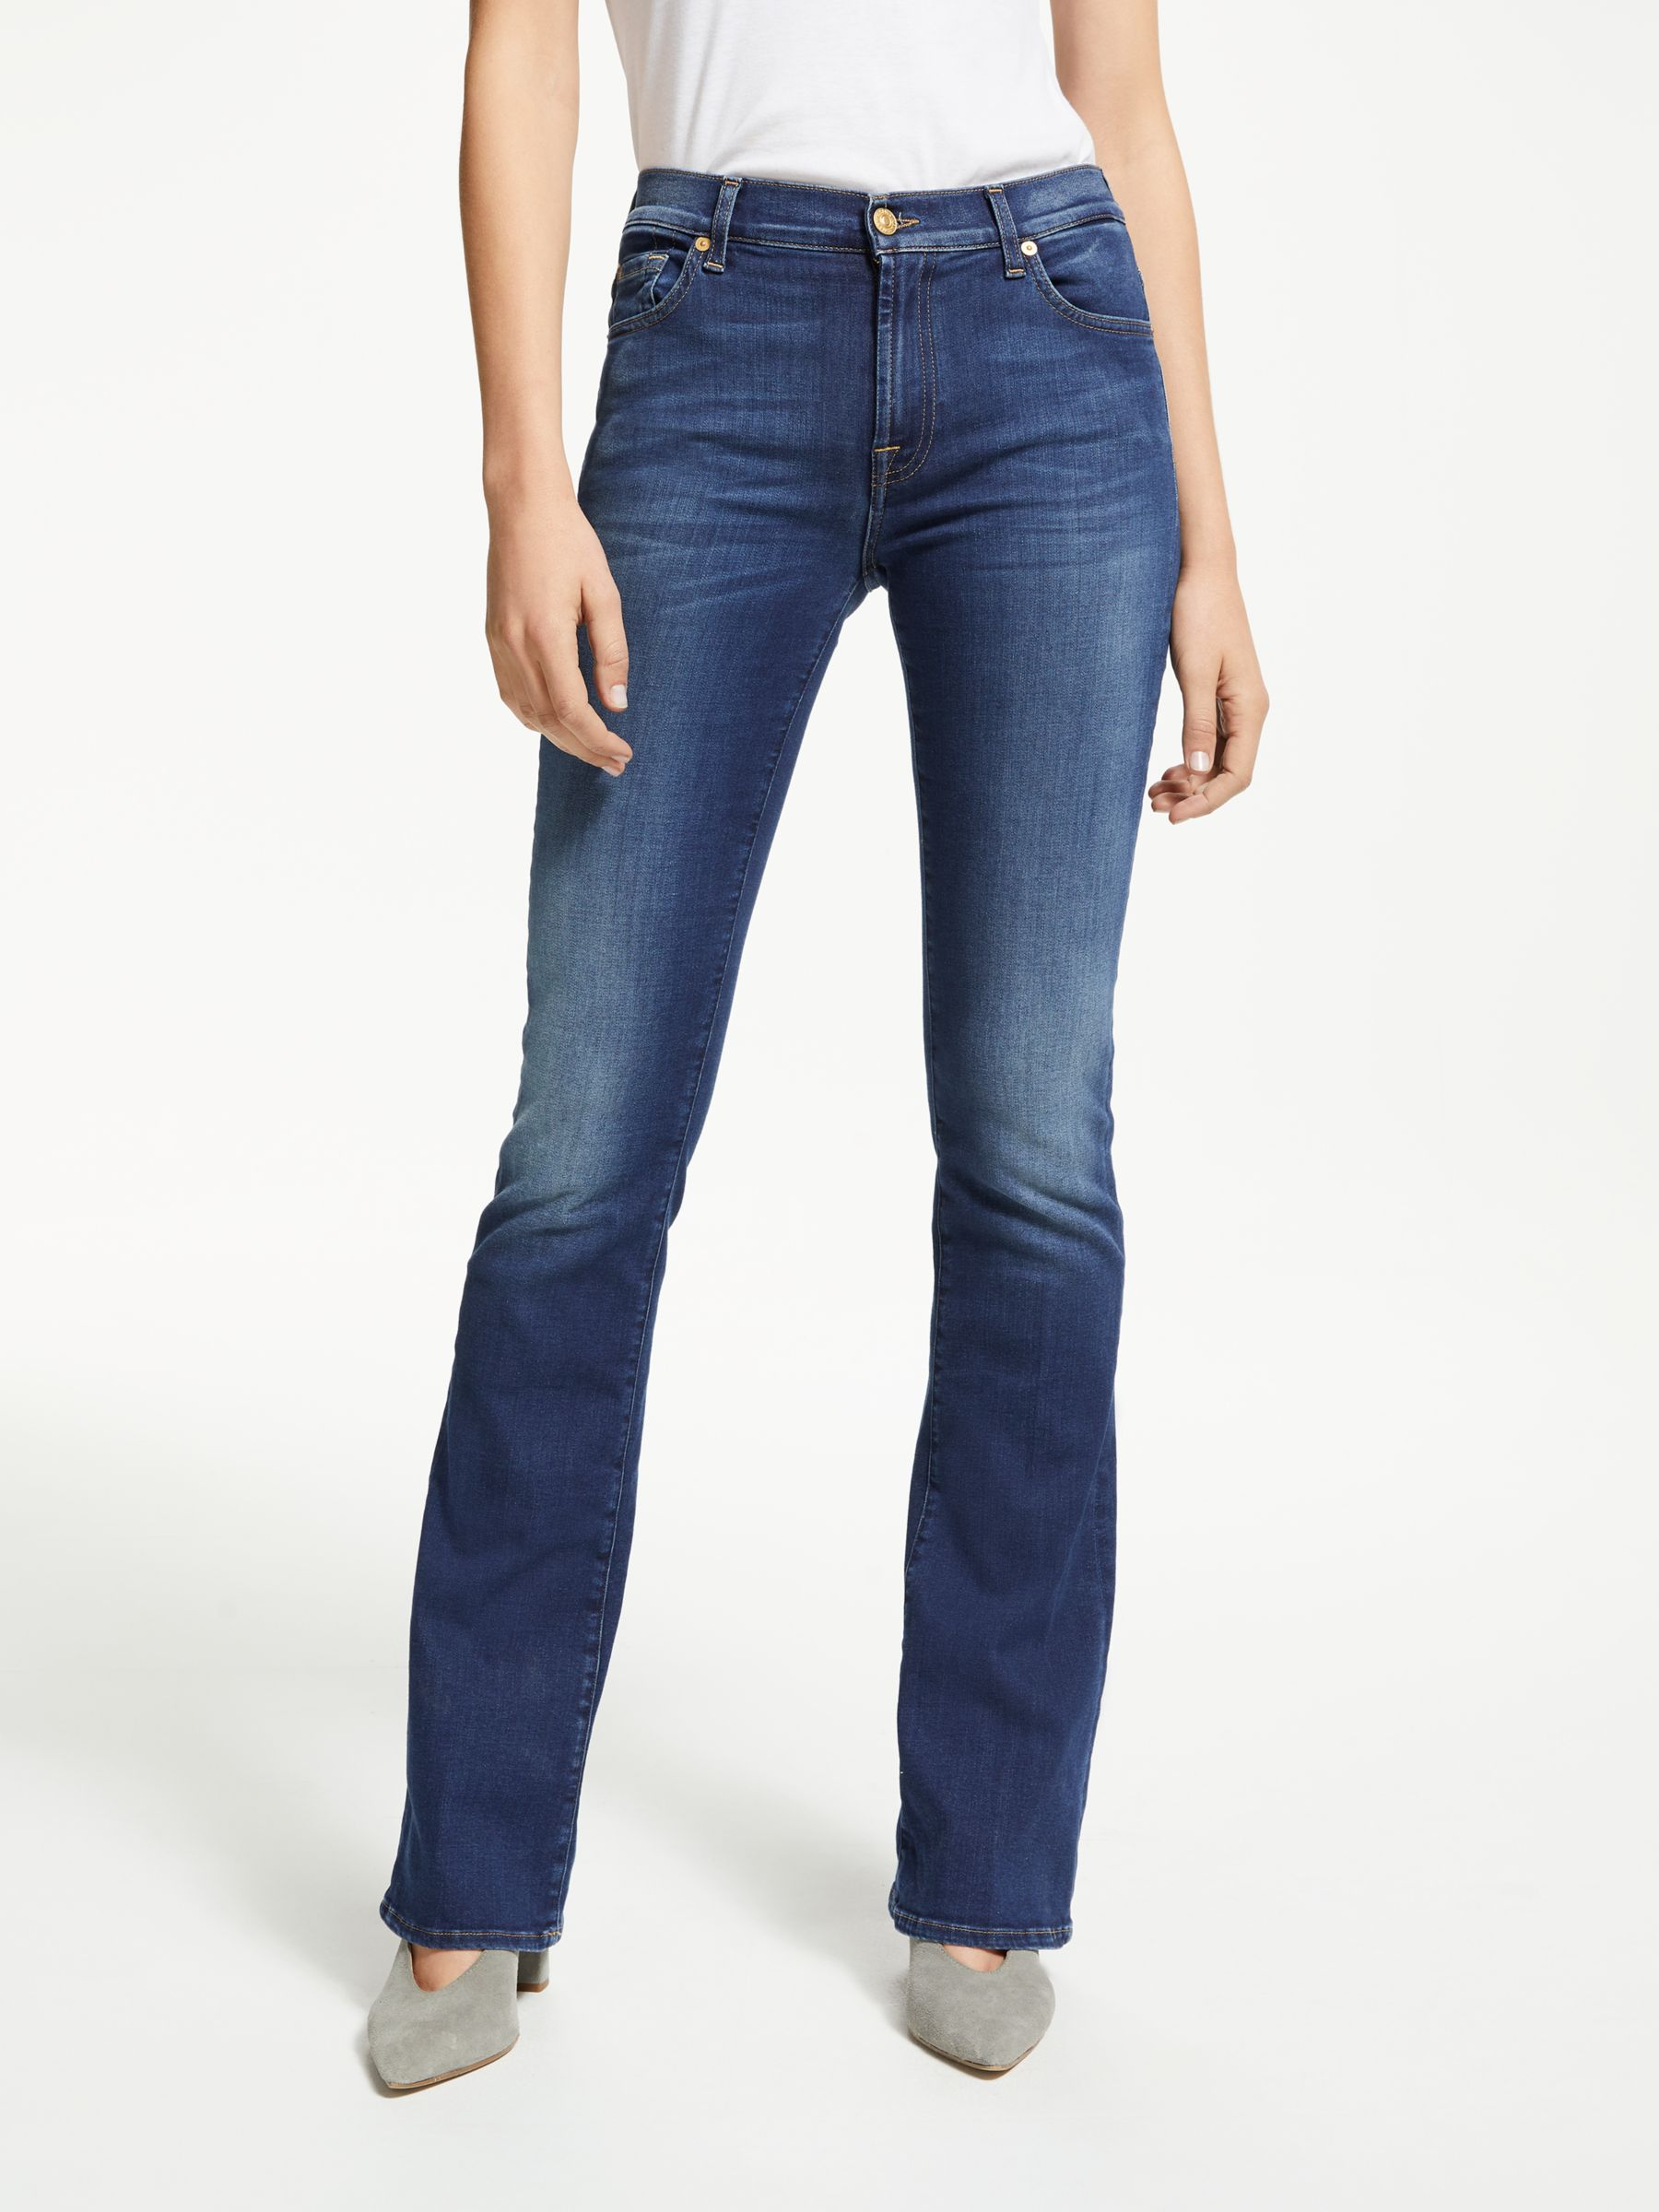 7 For All Mankind 7 For All Mankind Bootcut B(air) Jeans, Duchess